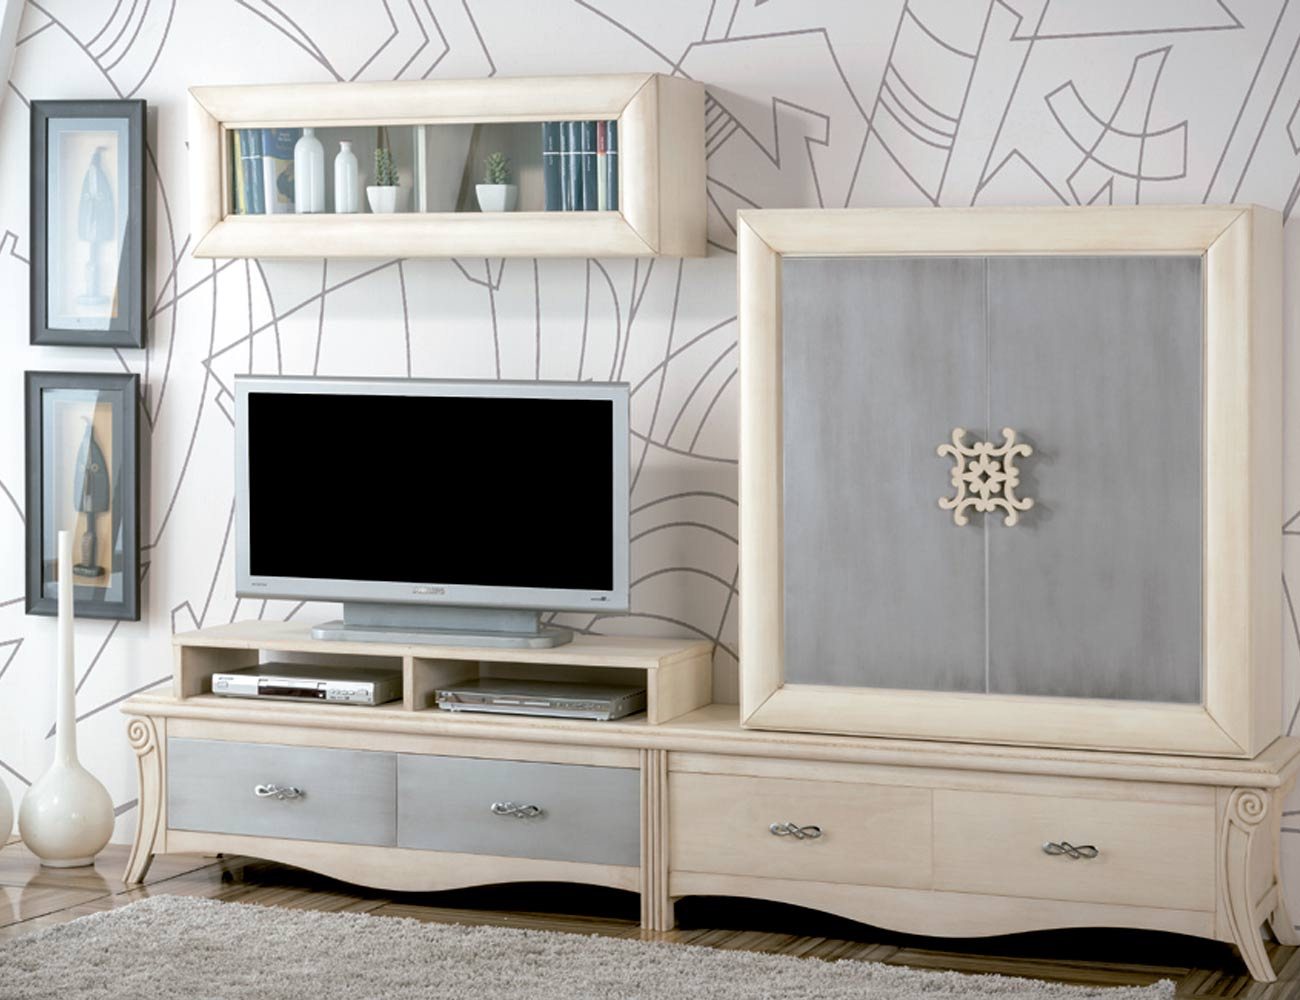 Mueble salon neoclasico color 500 5032